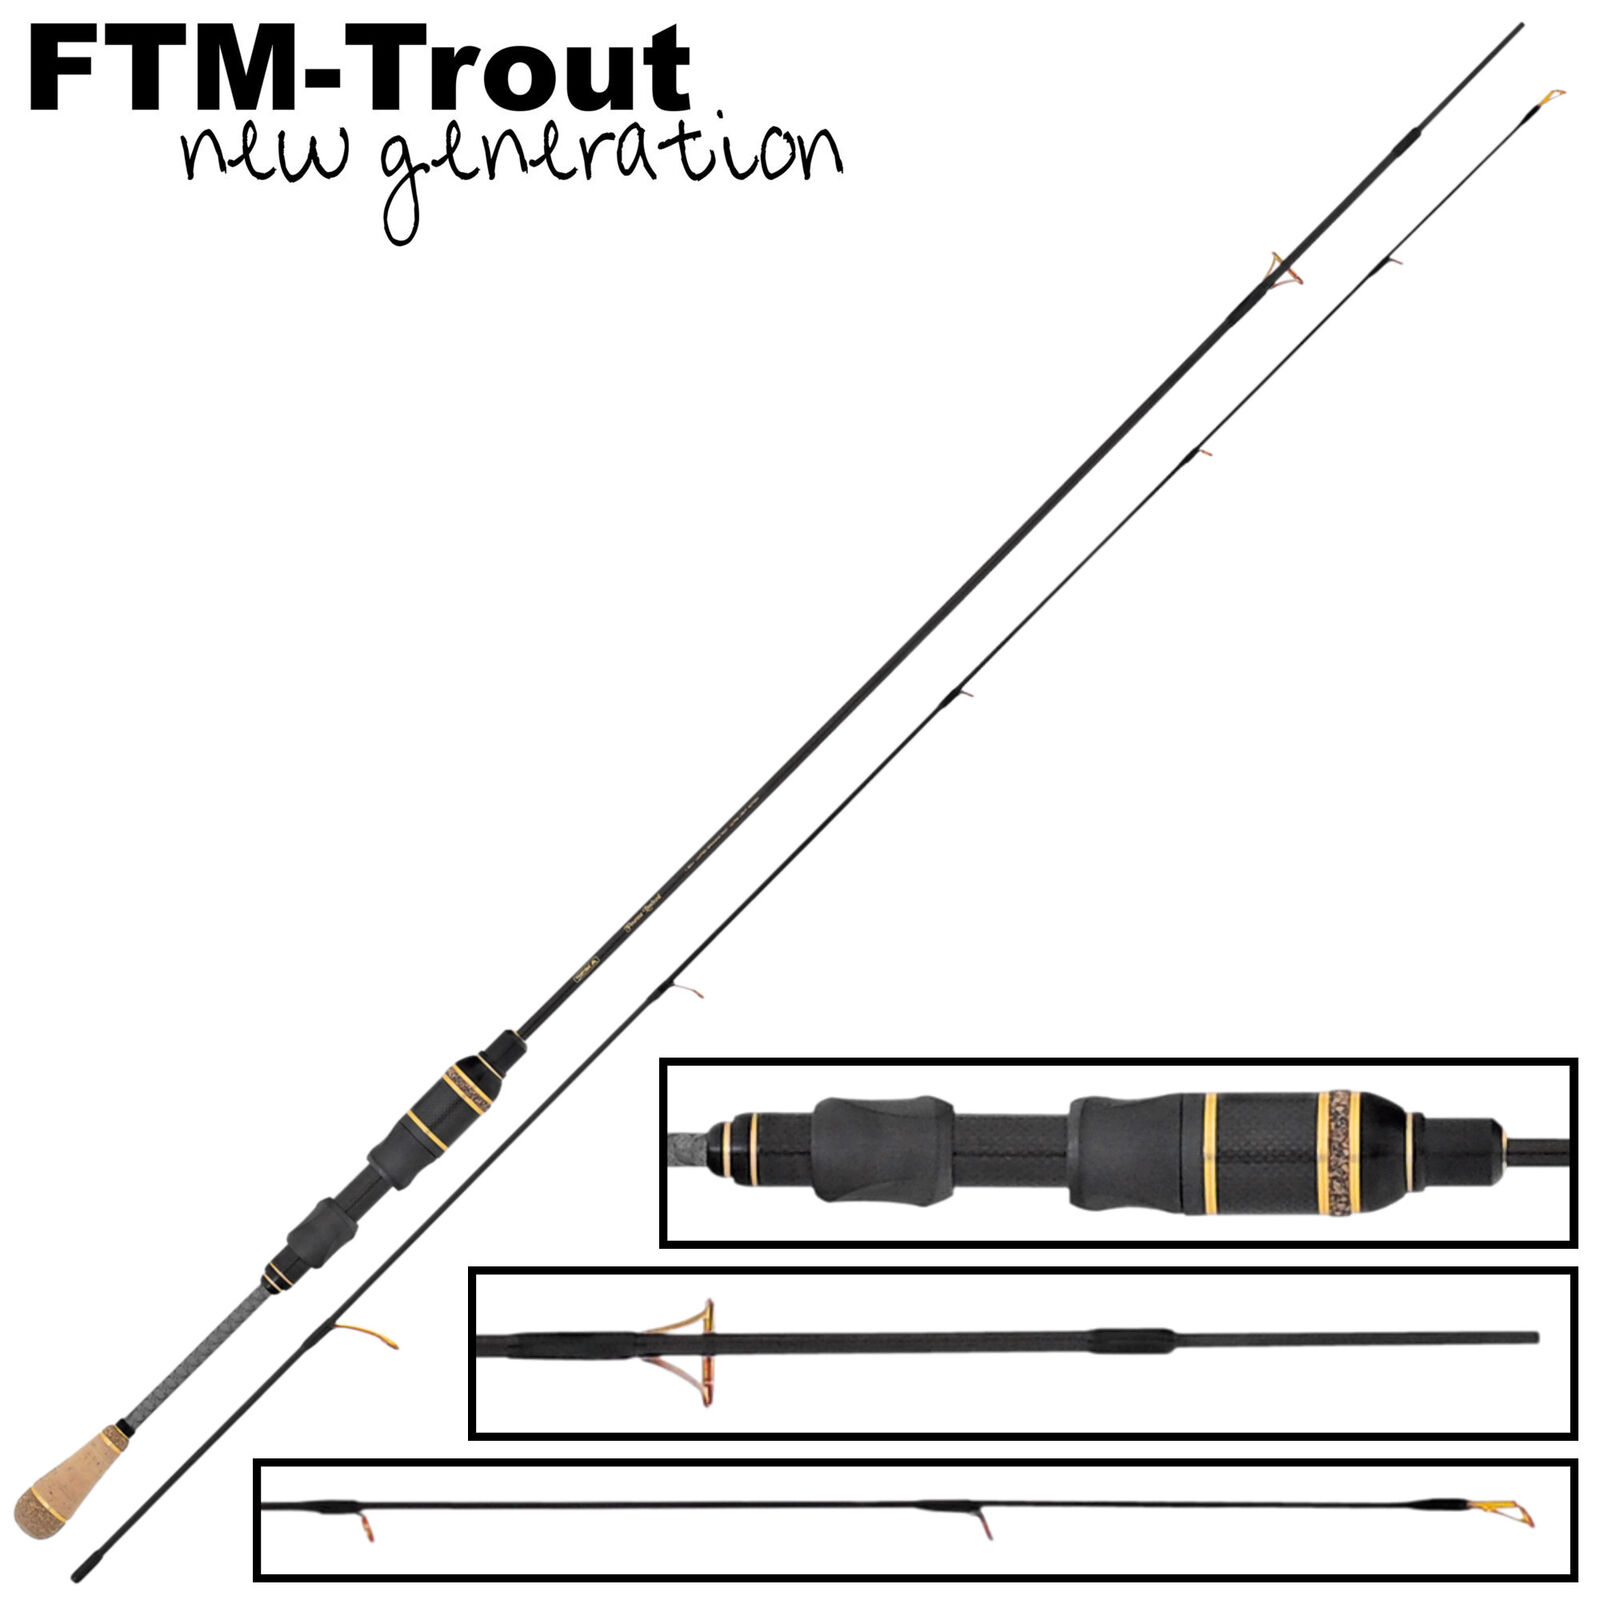 FTM Finesse Limited Light Rute 1,80m 0,8-4,5g - Spinnrute, Ultra Light Rute